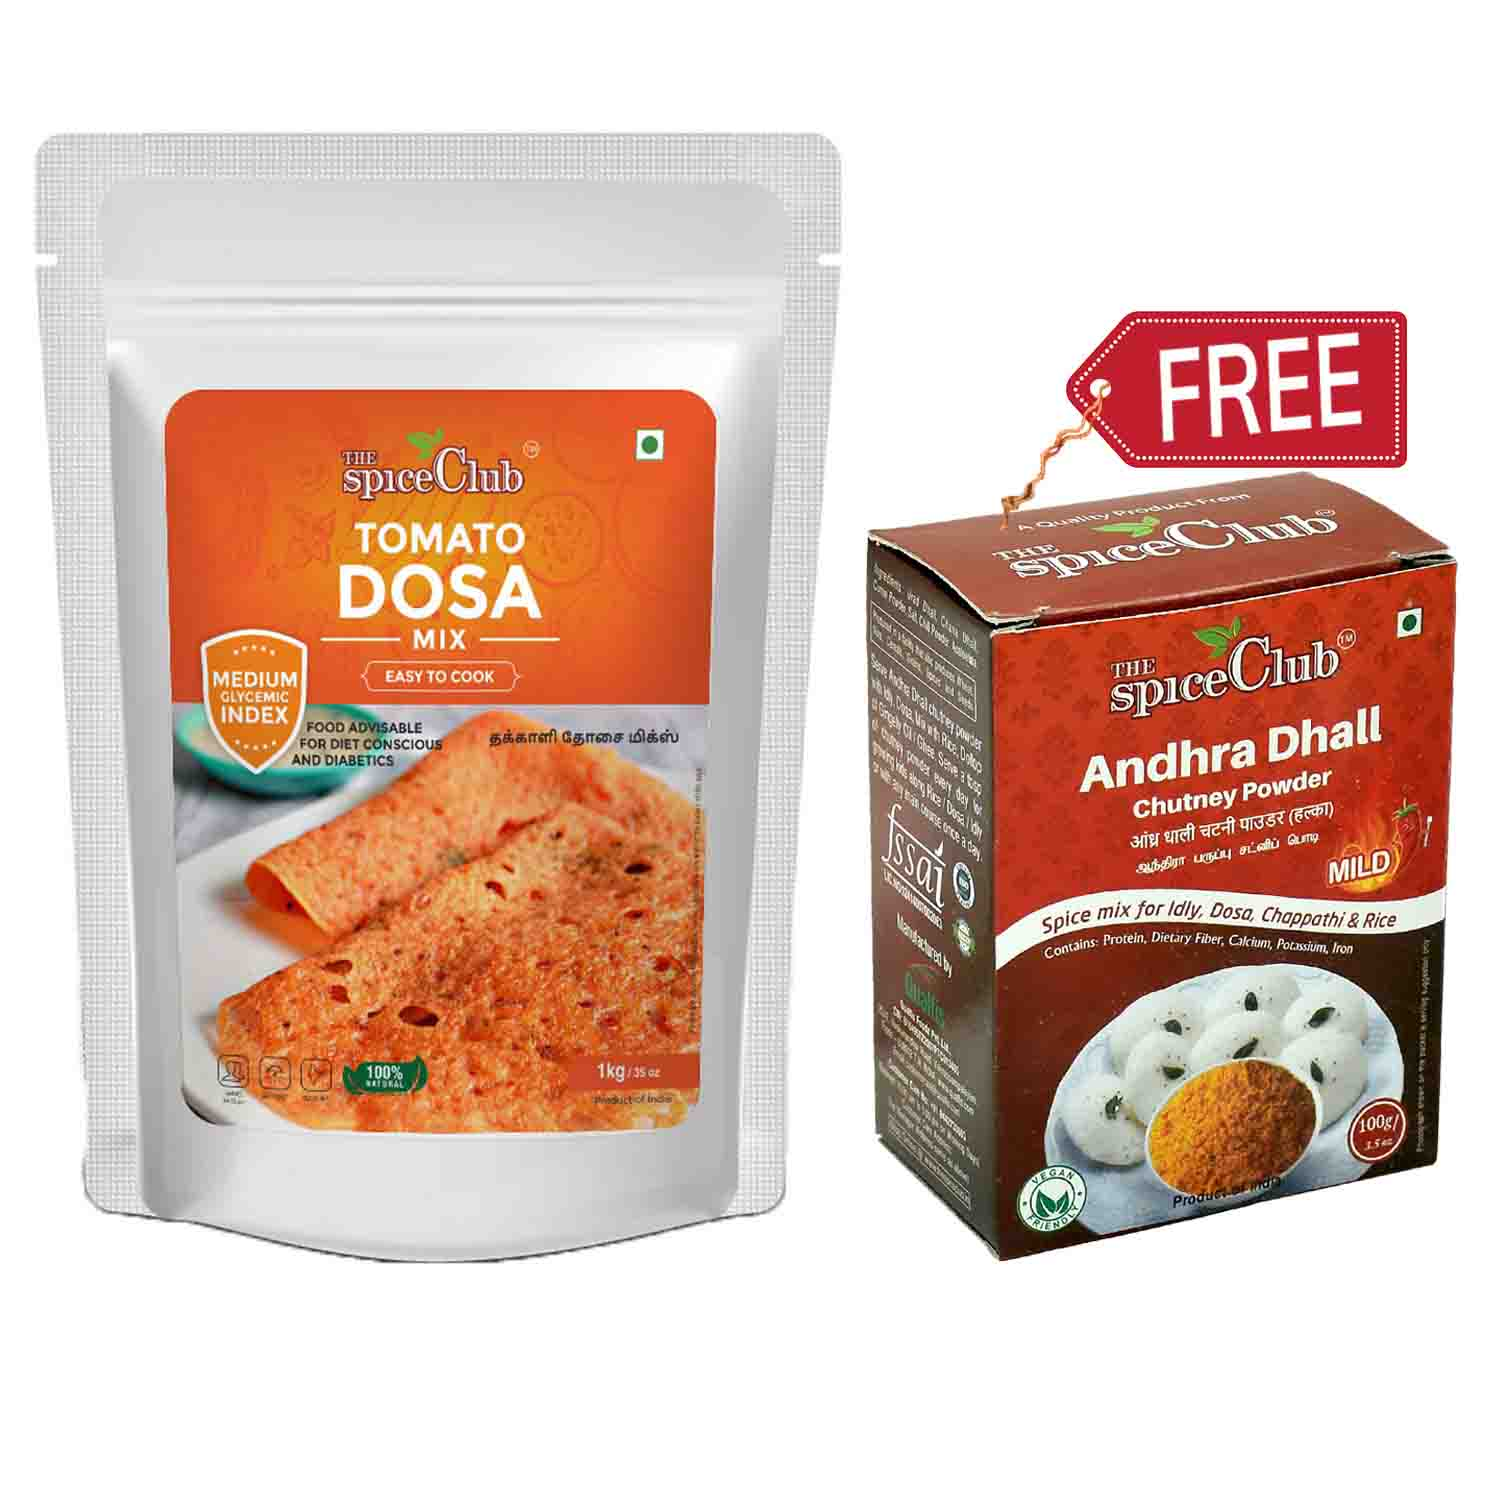 Tomato & Brown Rice Dosa Mix 1Kg - (Andhra Dhall Chutney Powder 100Gm Free)